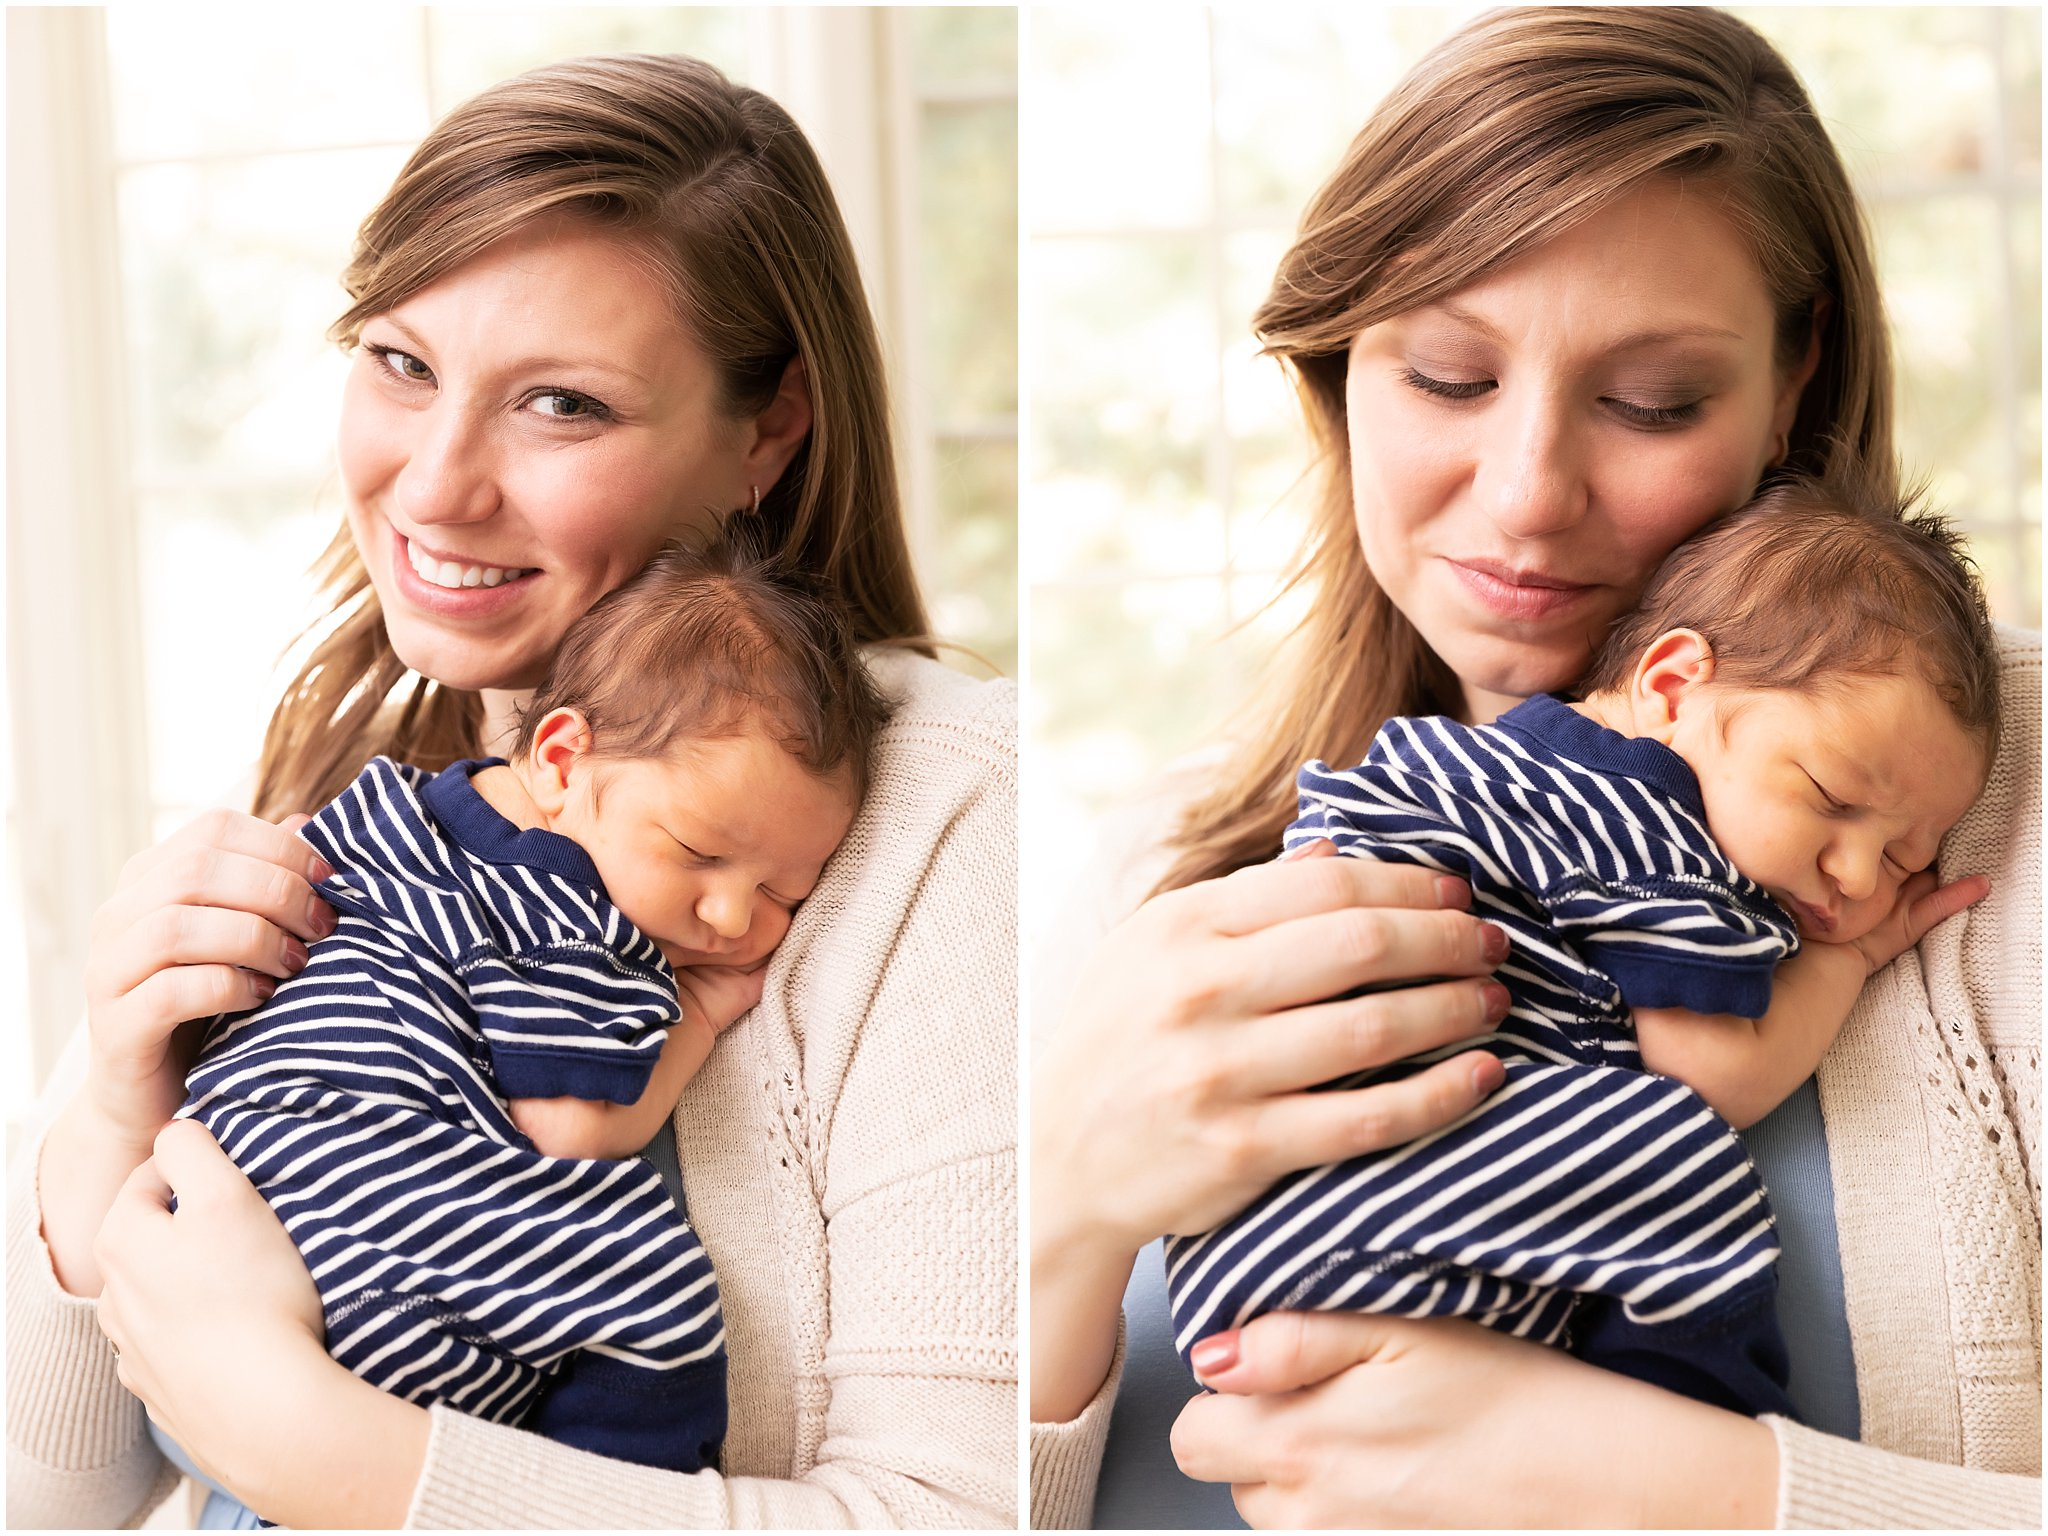 Newborn Photos | Ann Photographer